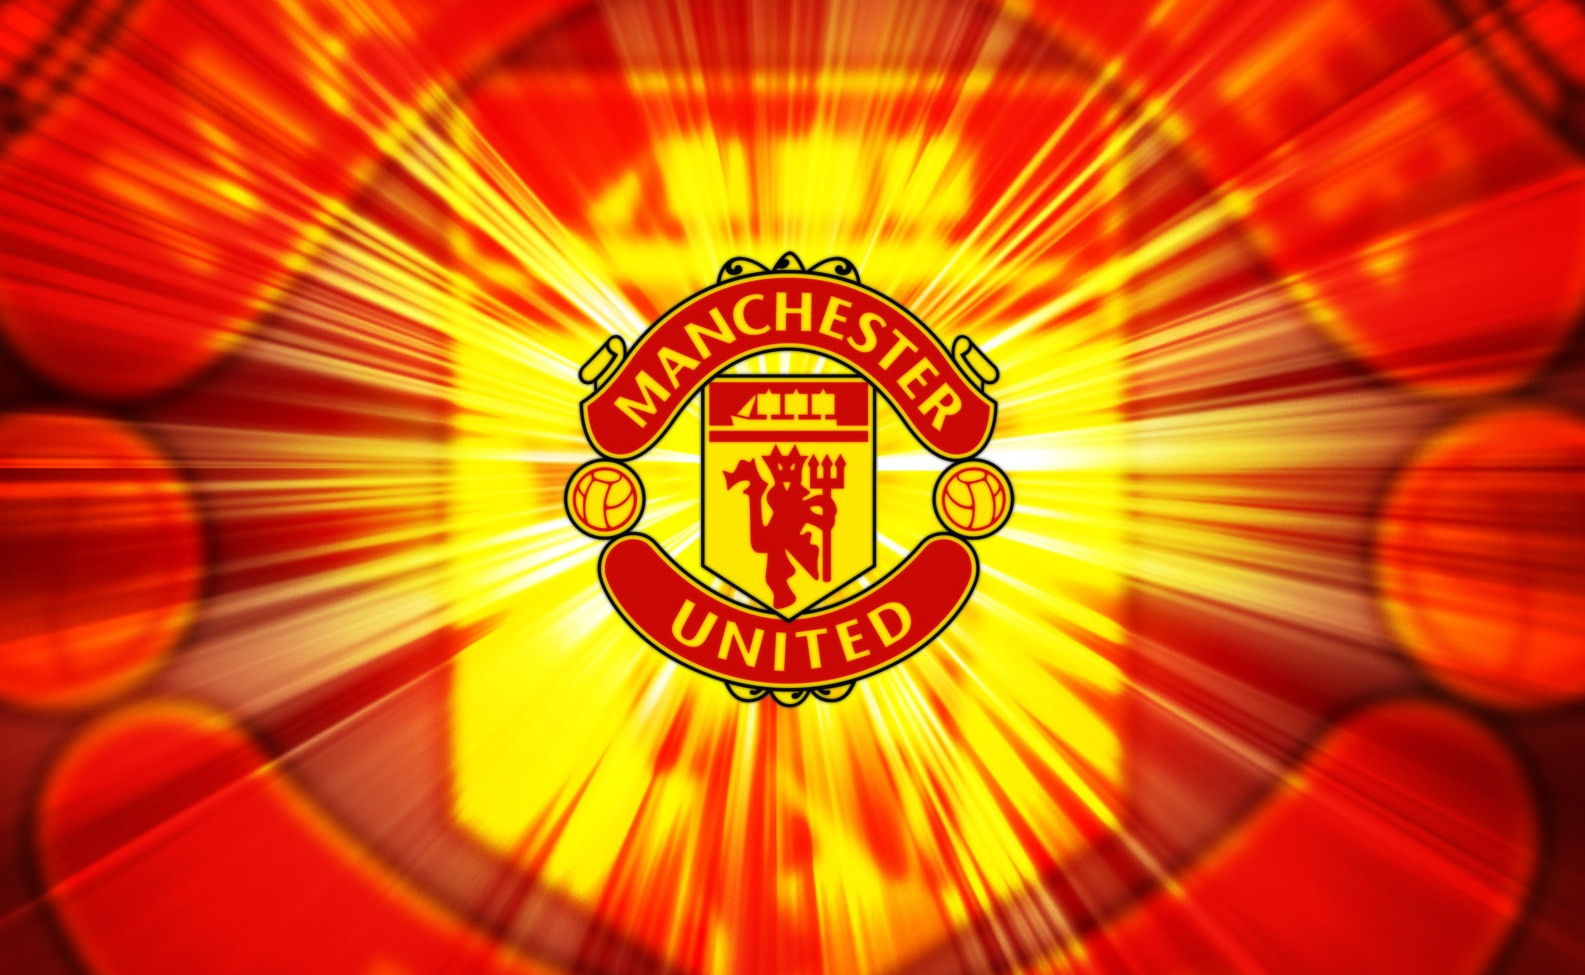 Manchester united fc new hd wallpapers 2013 2014